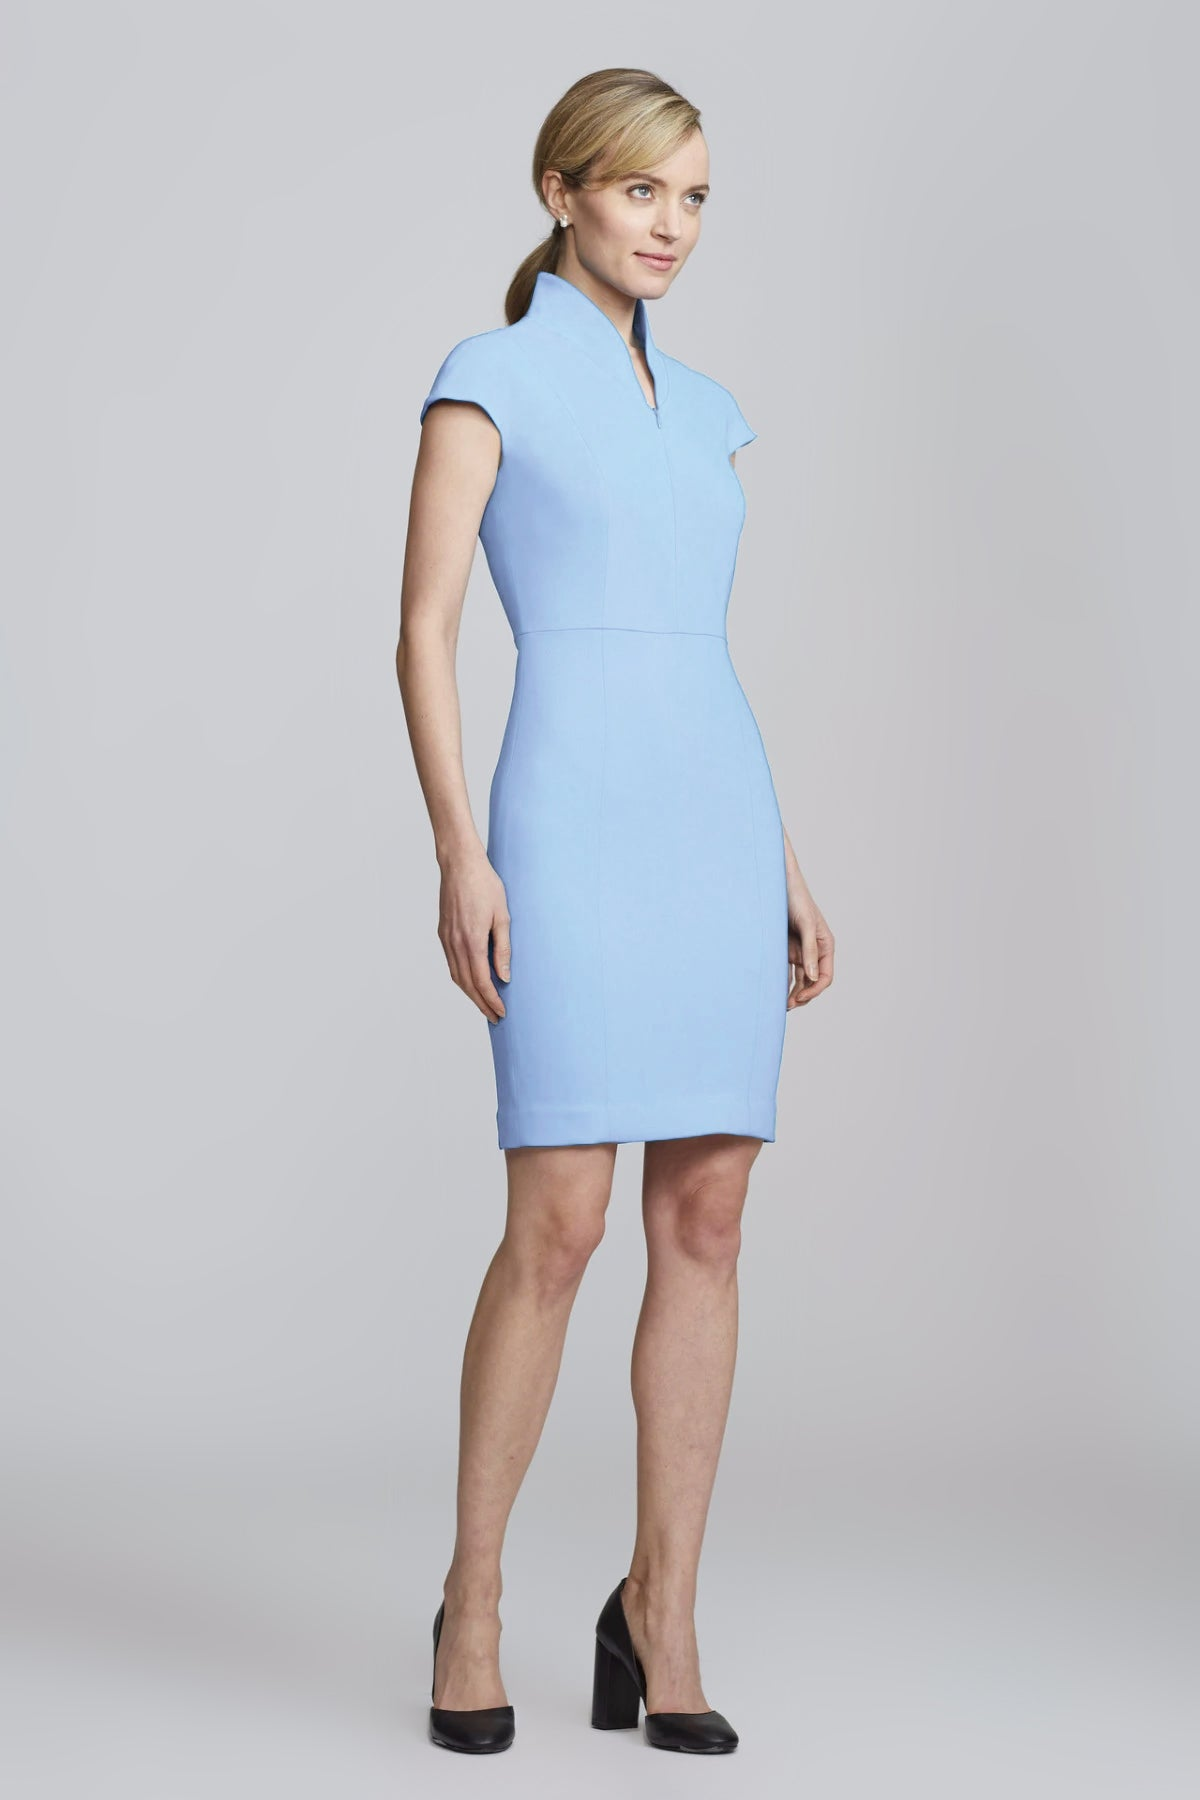 Evelyn Dress - Baby Blue Pre-order